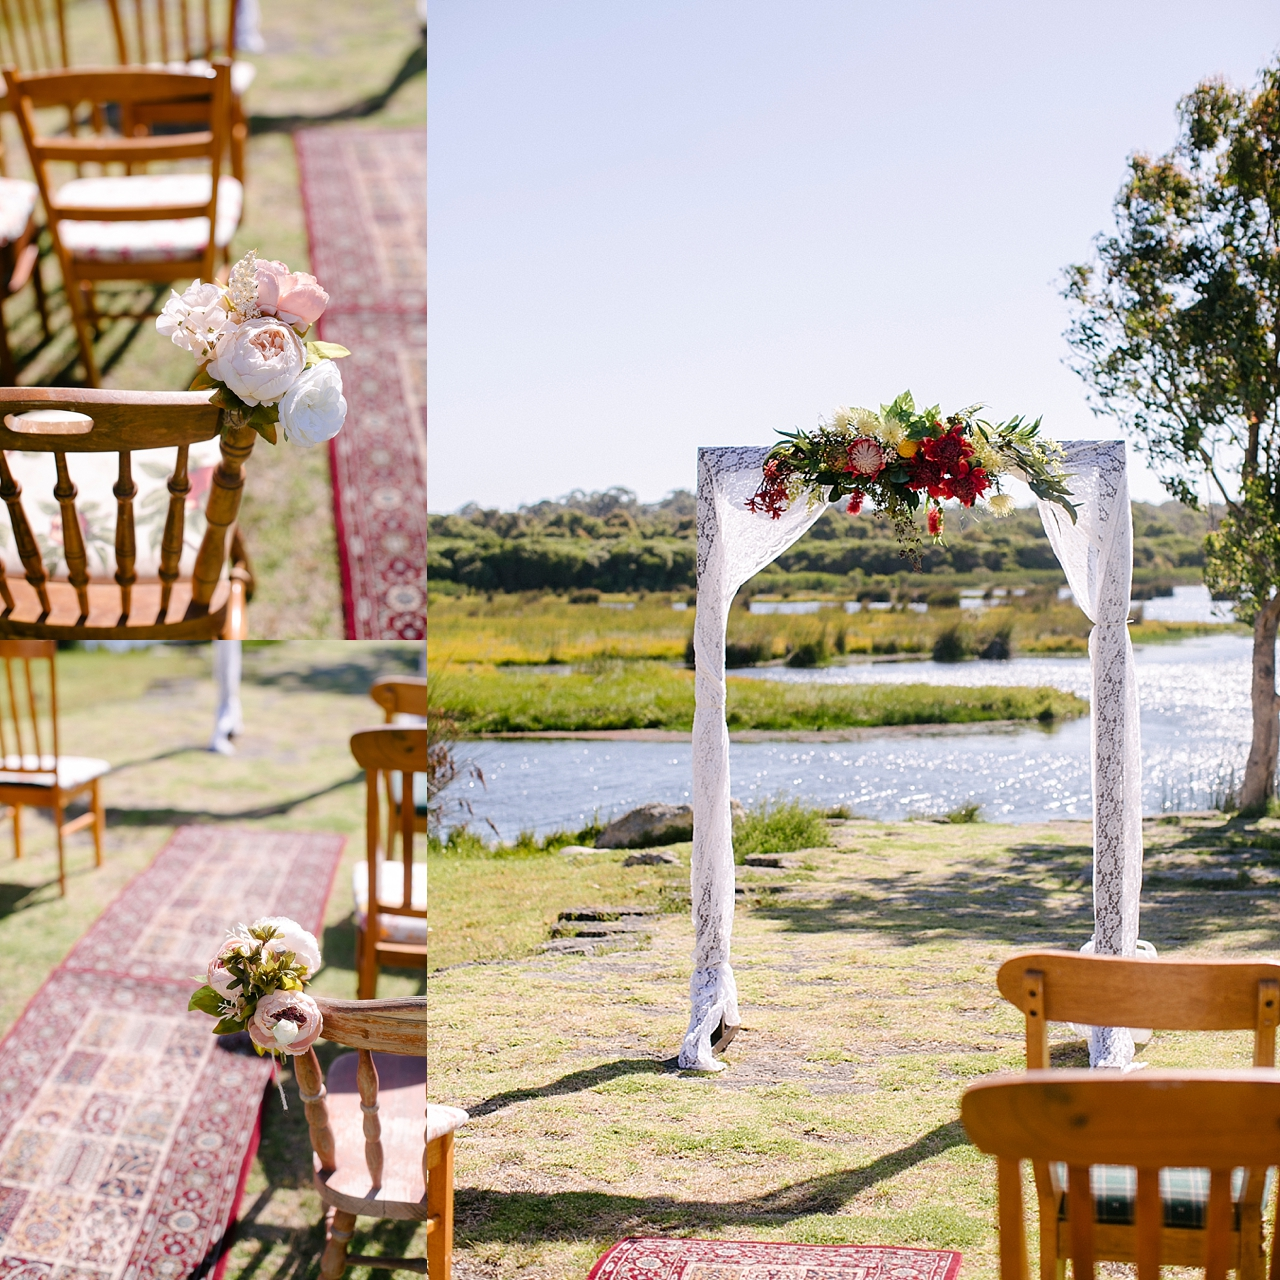 Yanchep_Pop_Up_Wedding_Ceremony_17.jpg